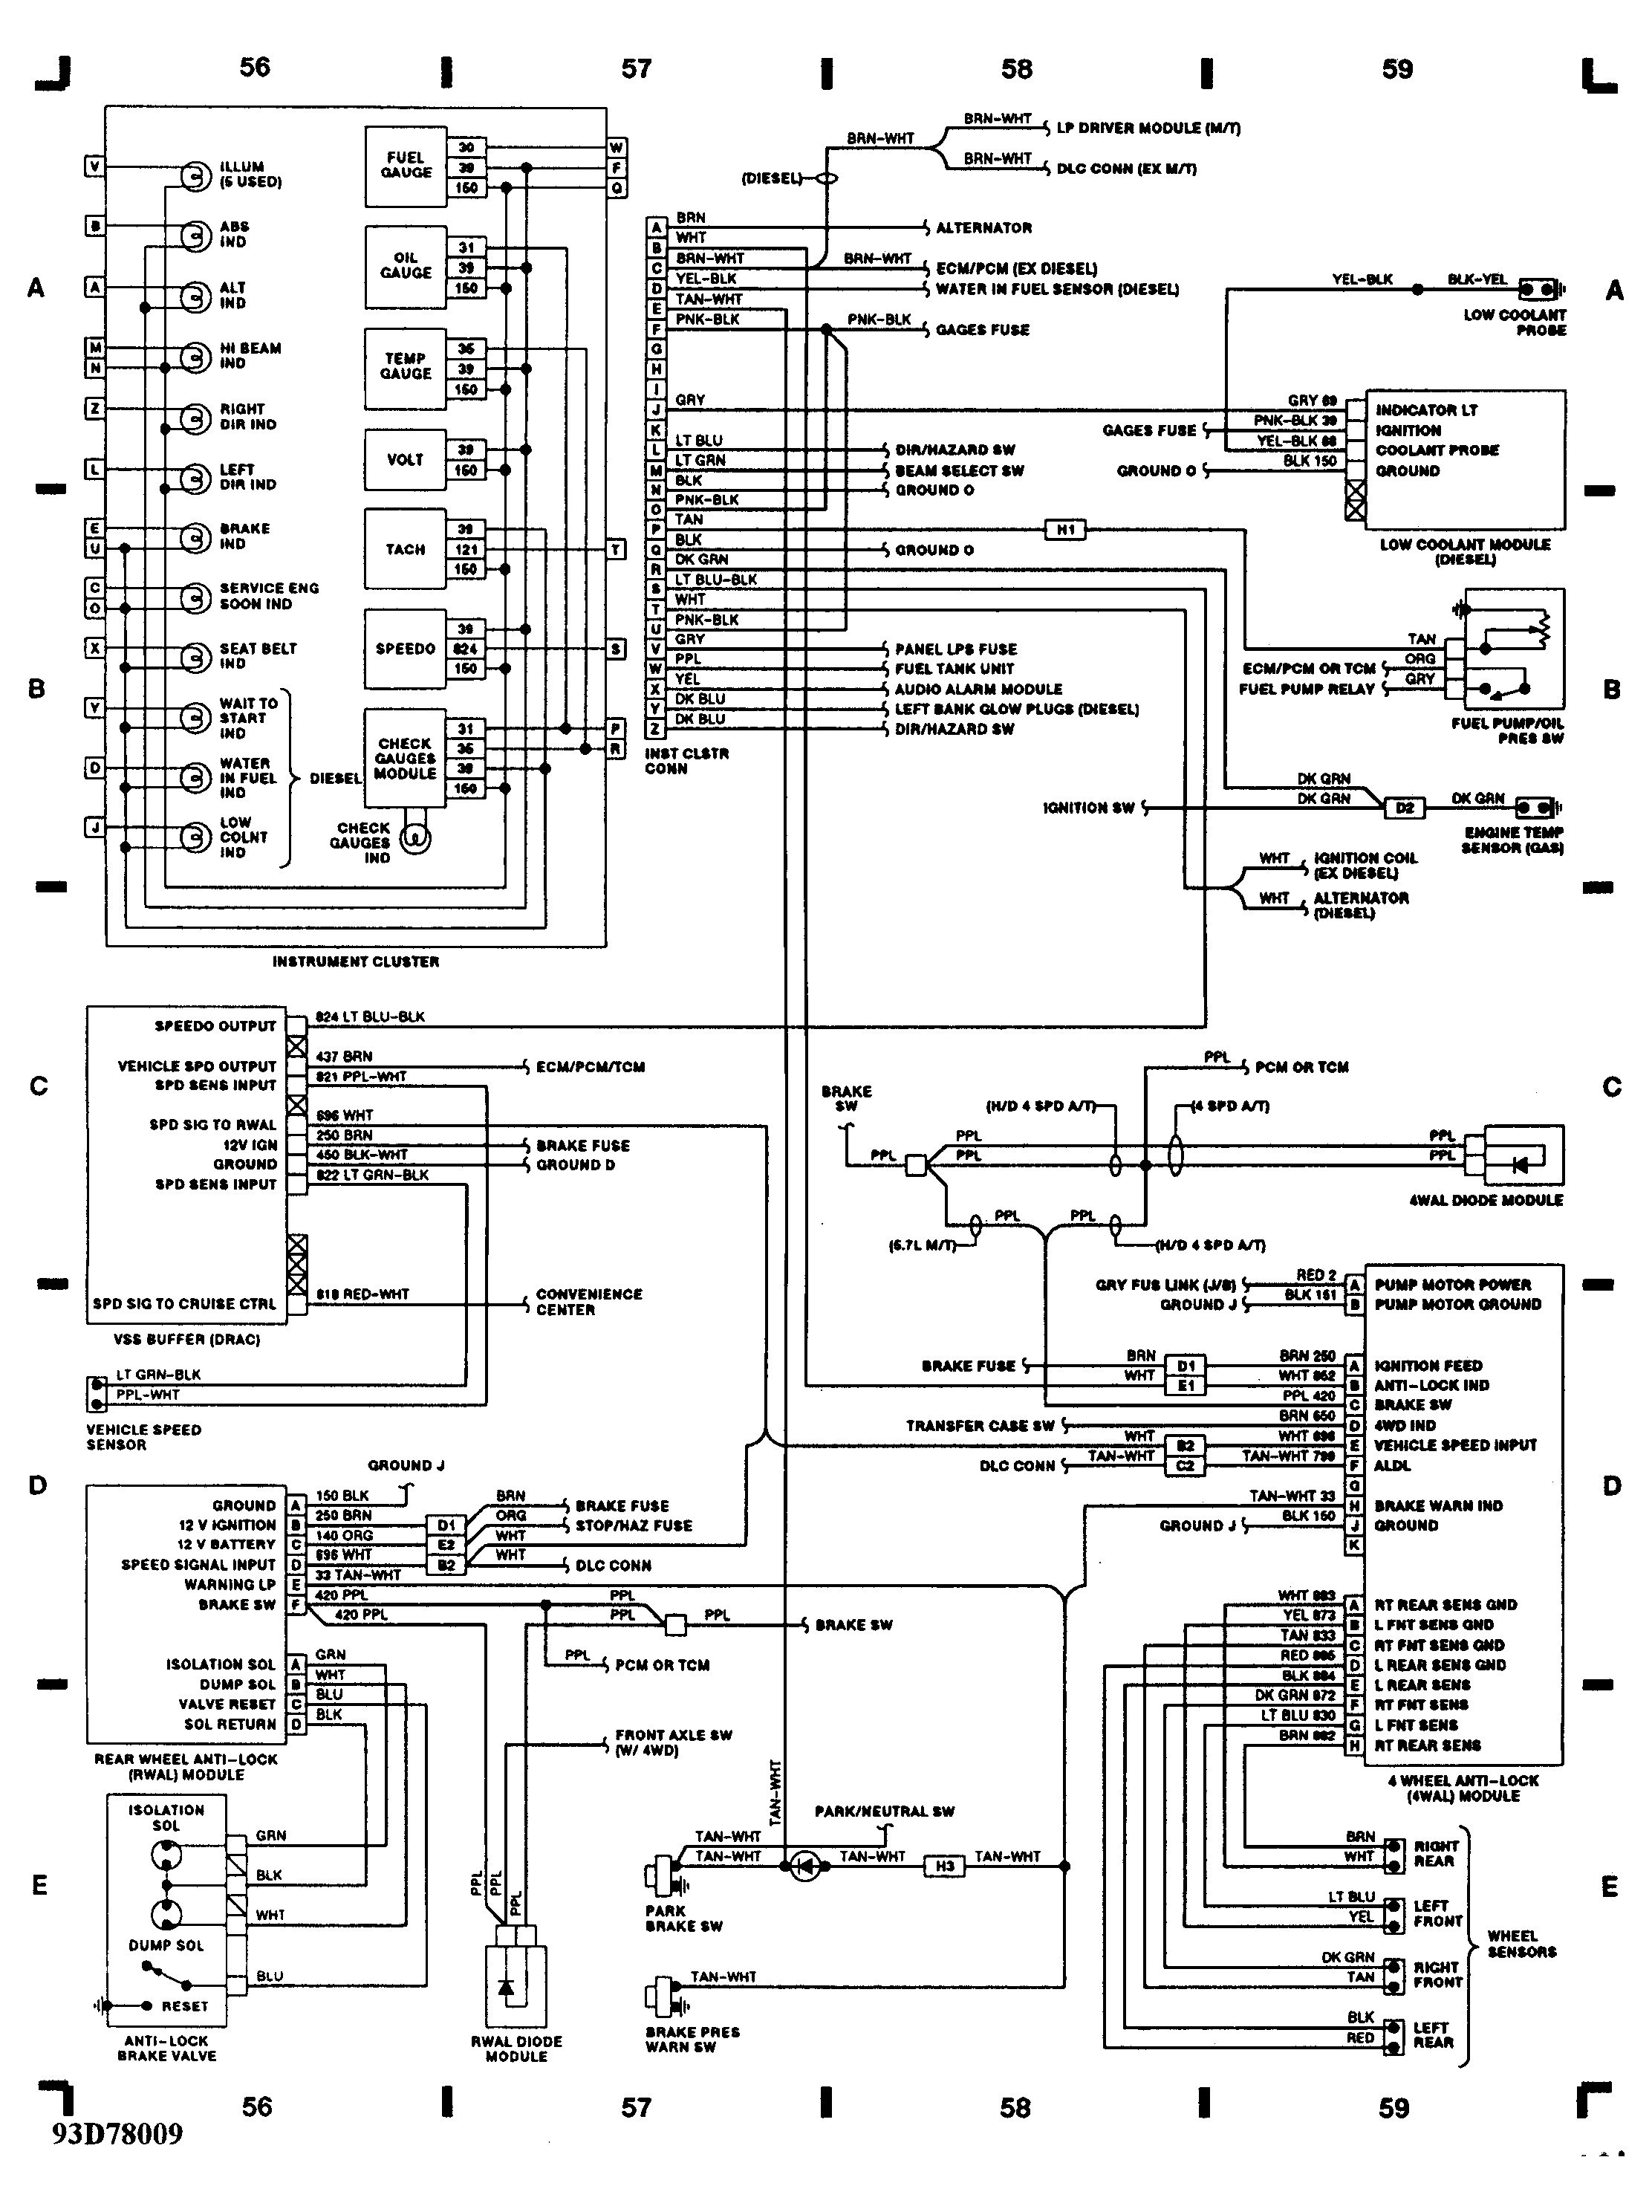 chevy engine3 4 wiring harness wiring diagram home 3 4 liter gm engine diagram wiring diagram [ 2224 x 2977 Pixel ]